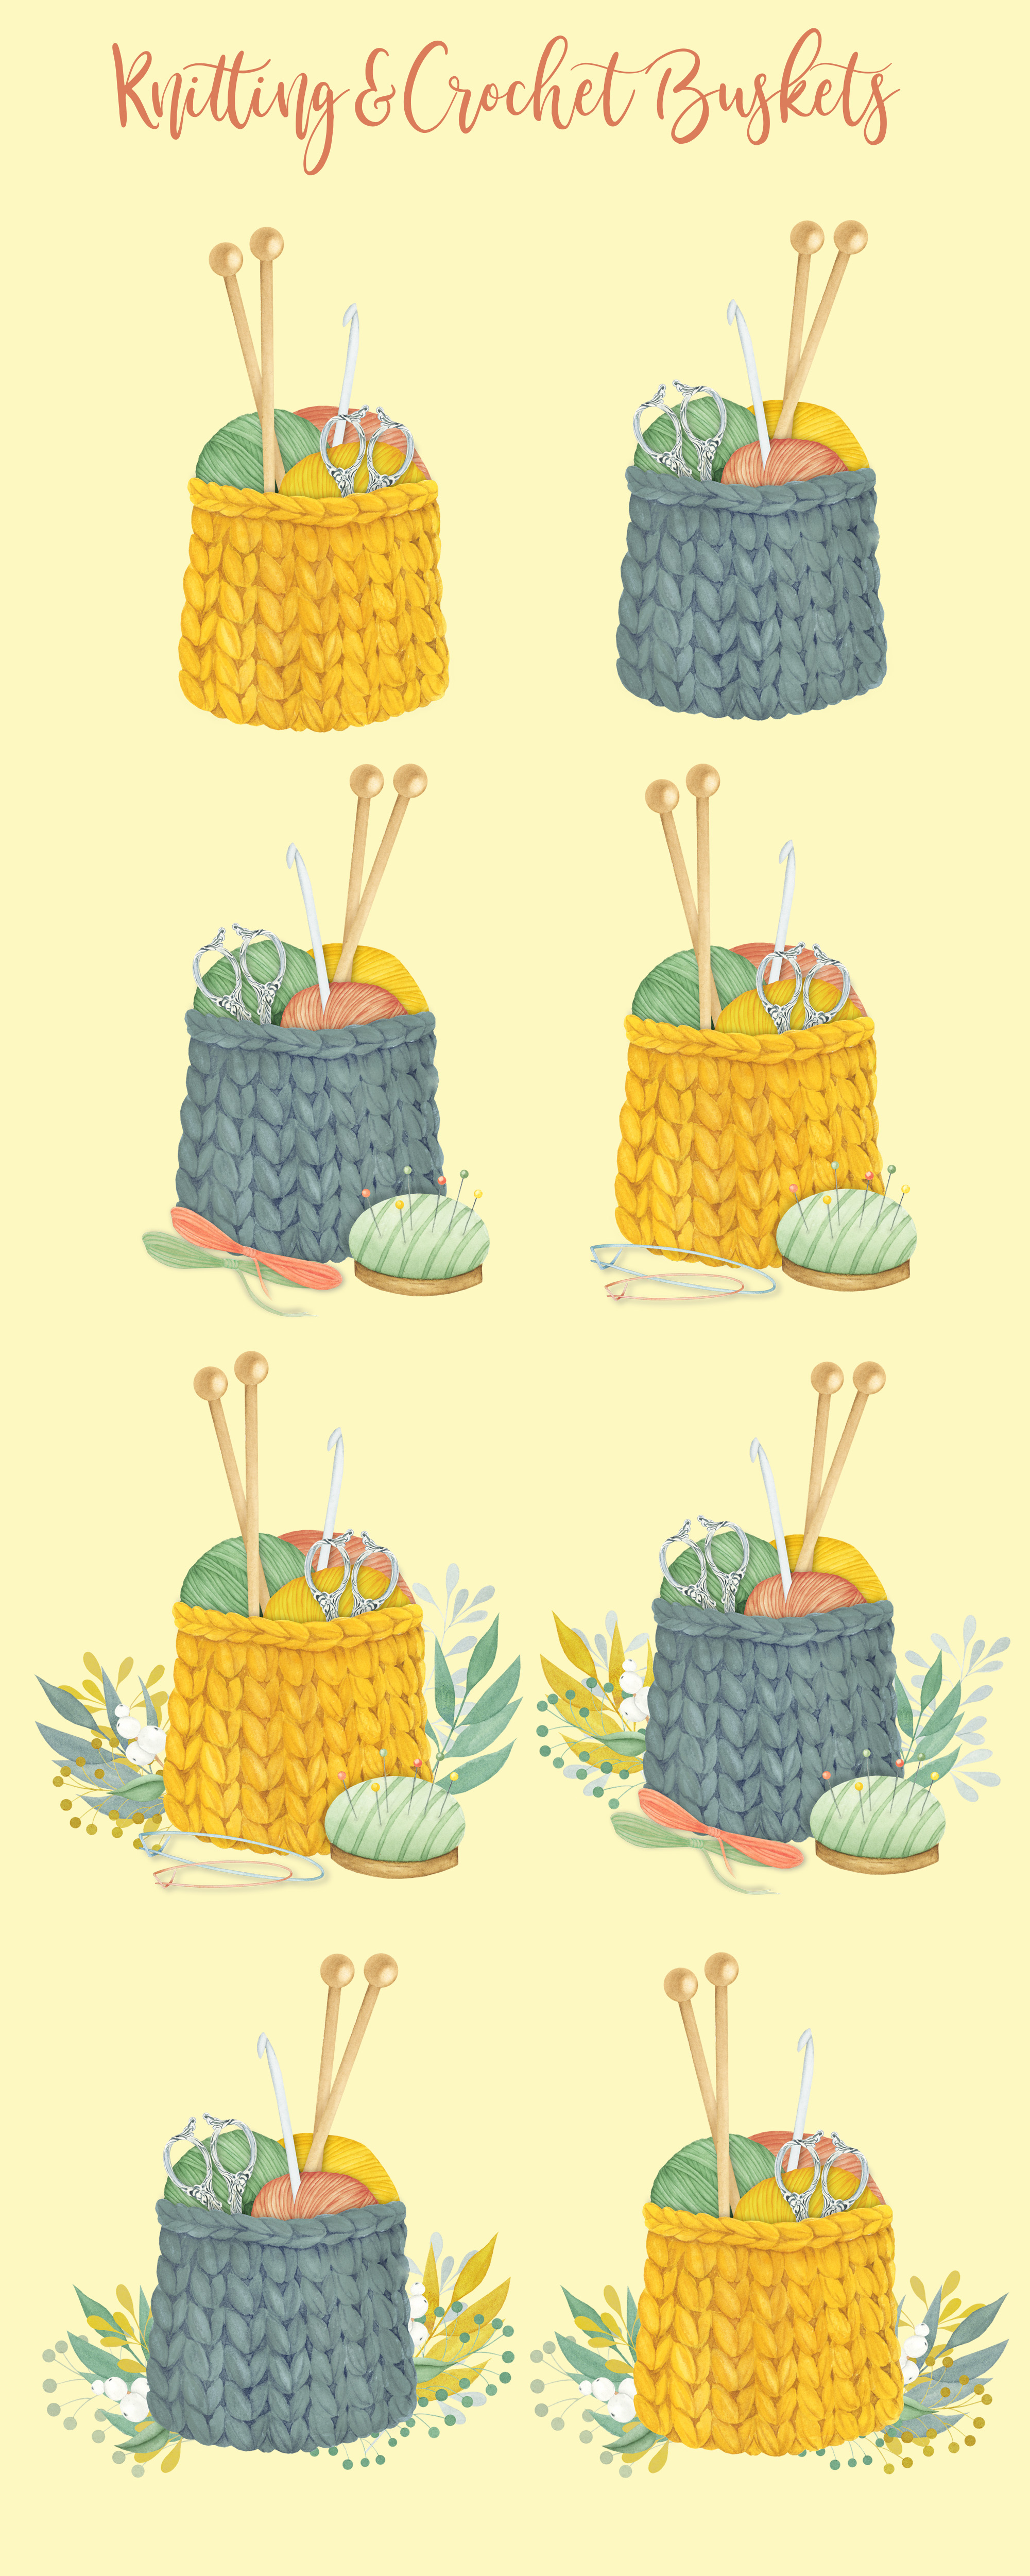 Watercolor Knitting and Crochet Clipart example image 4